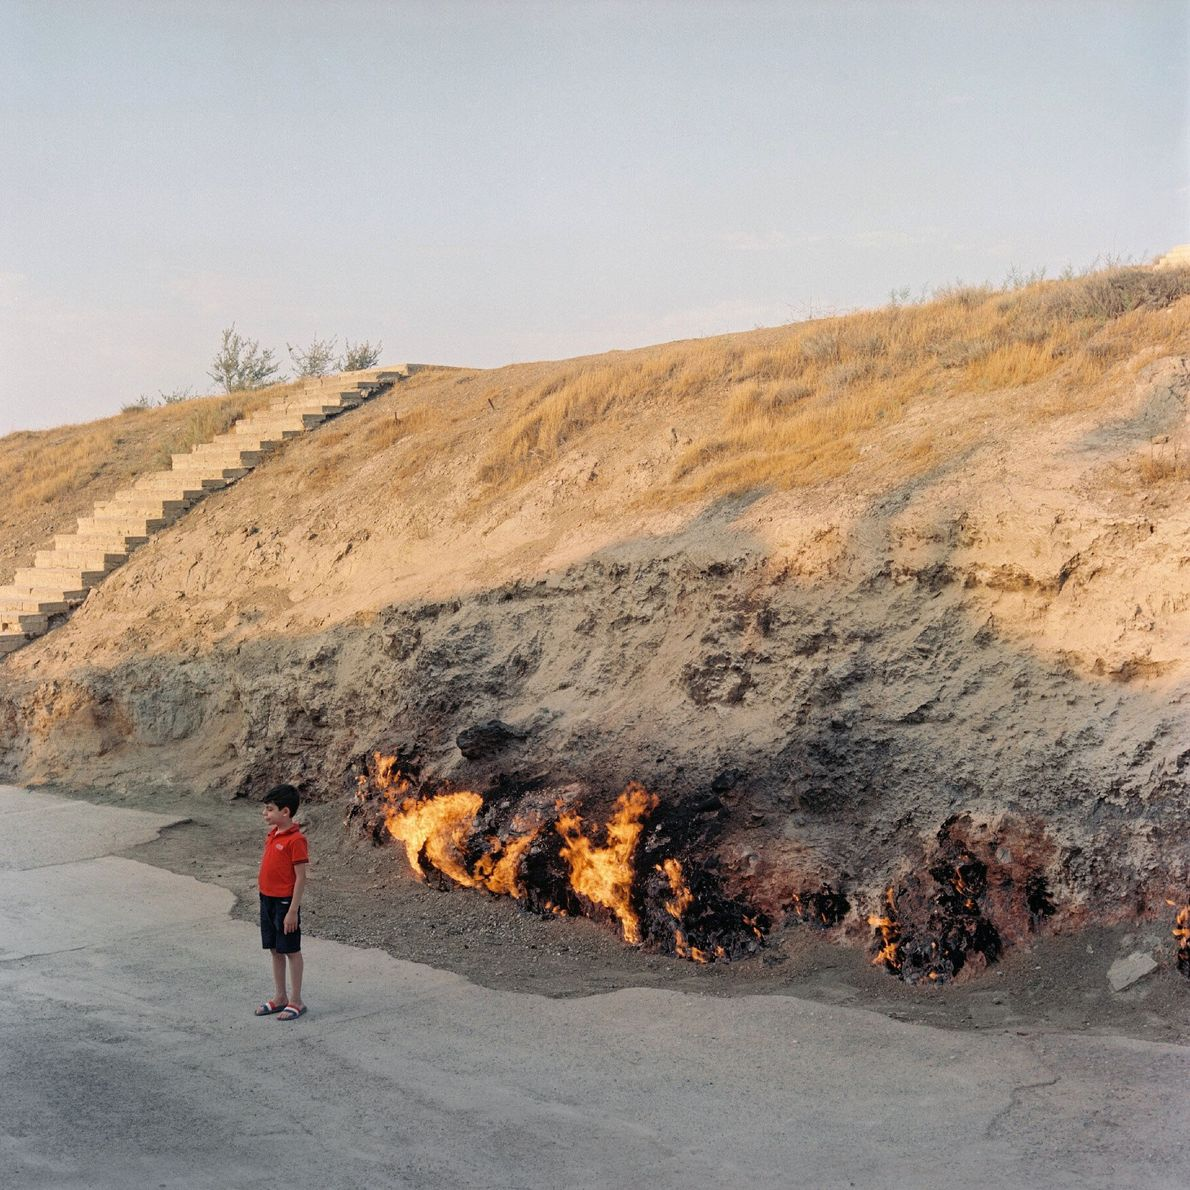 Yanardag, a gas poked hill, has been burning for several hundred years.